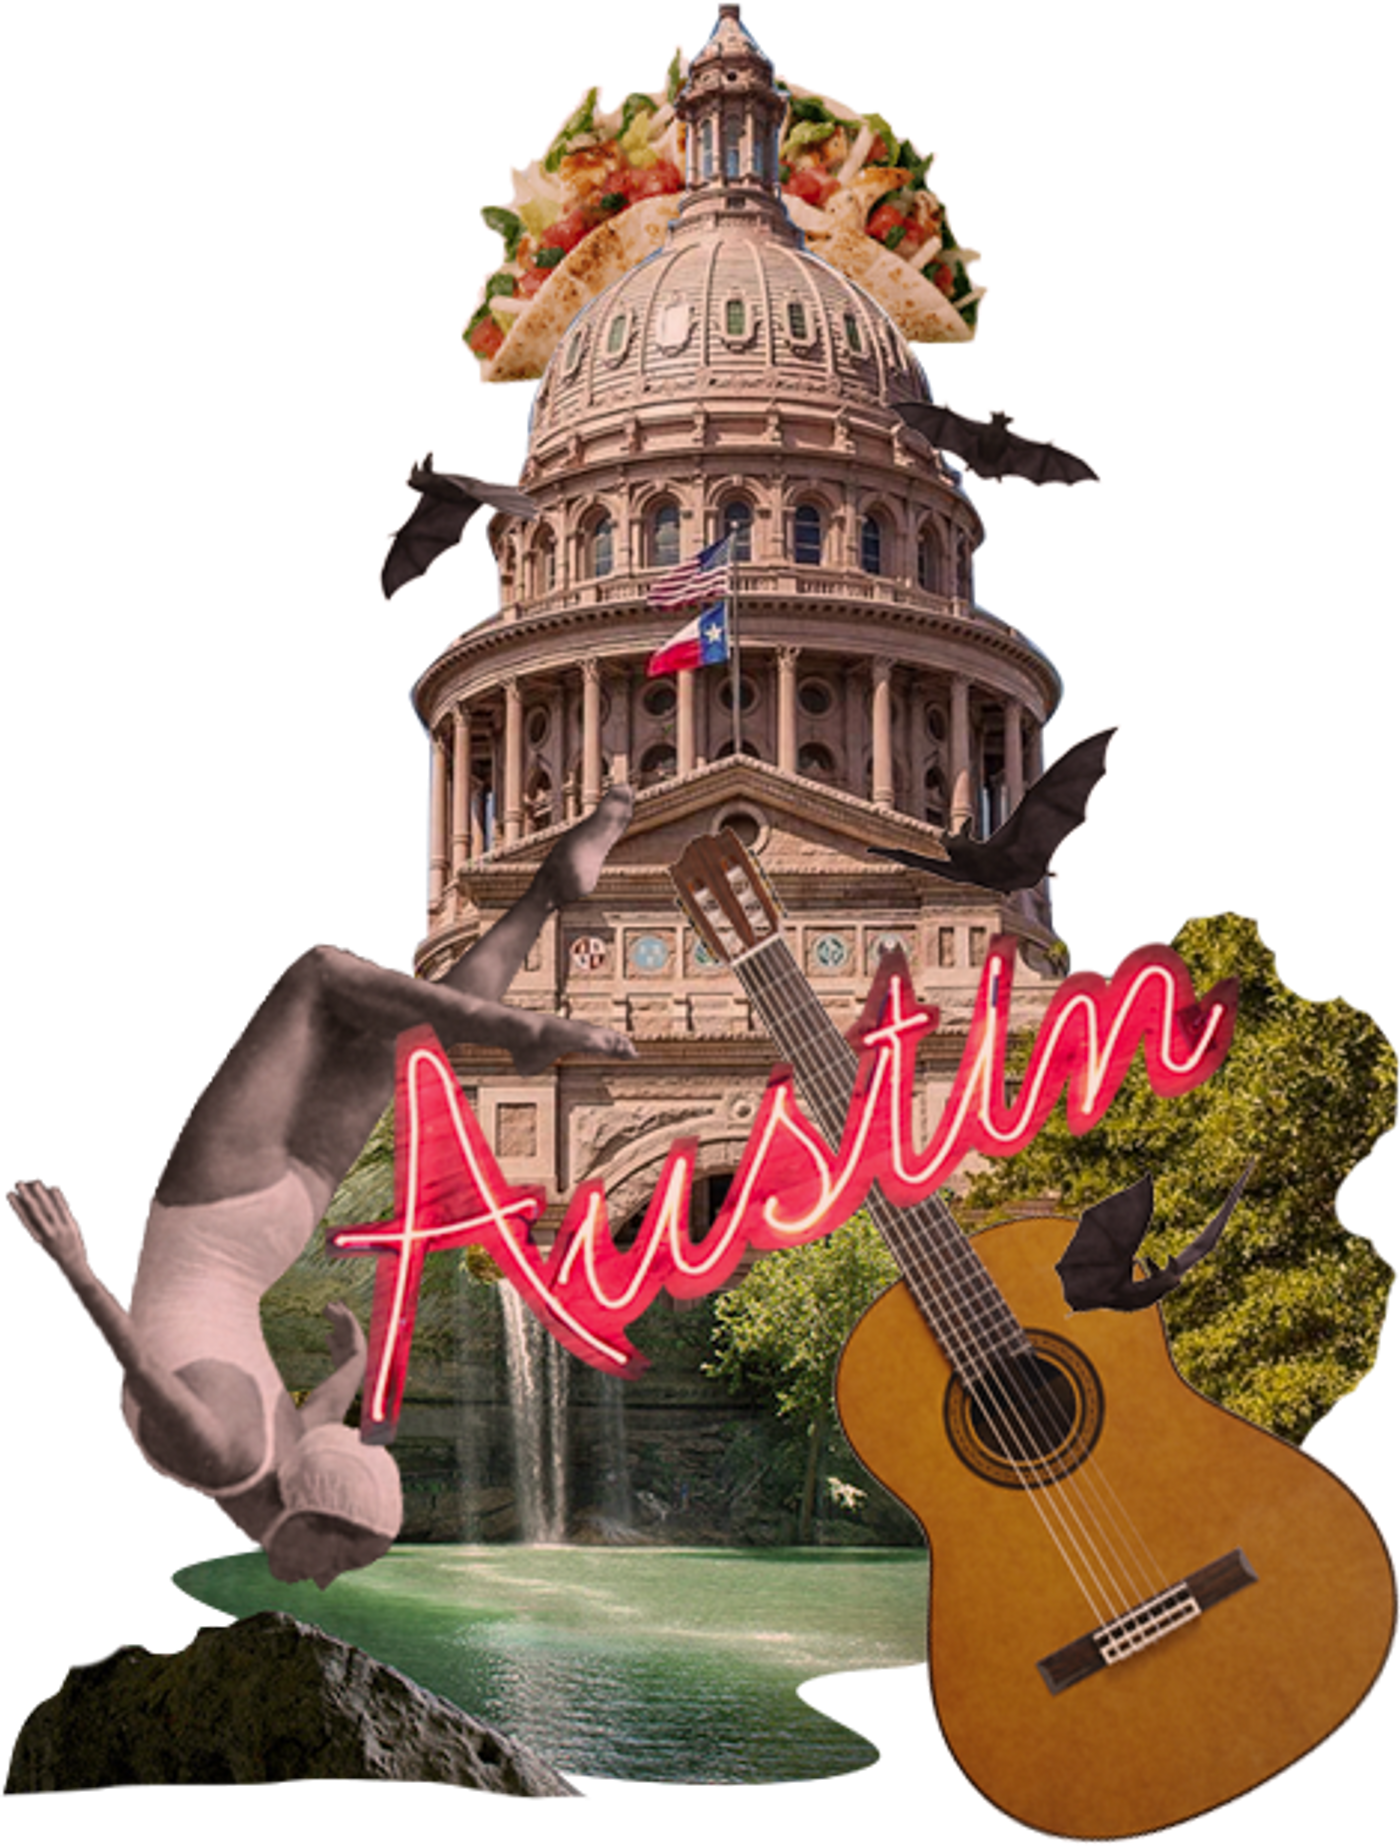 Collage of the city of Austin with guitar and waterfall.